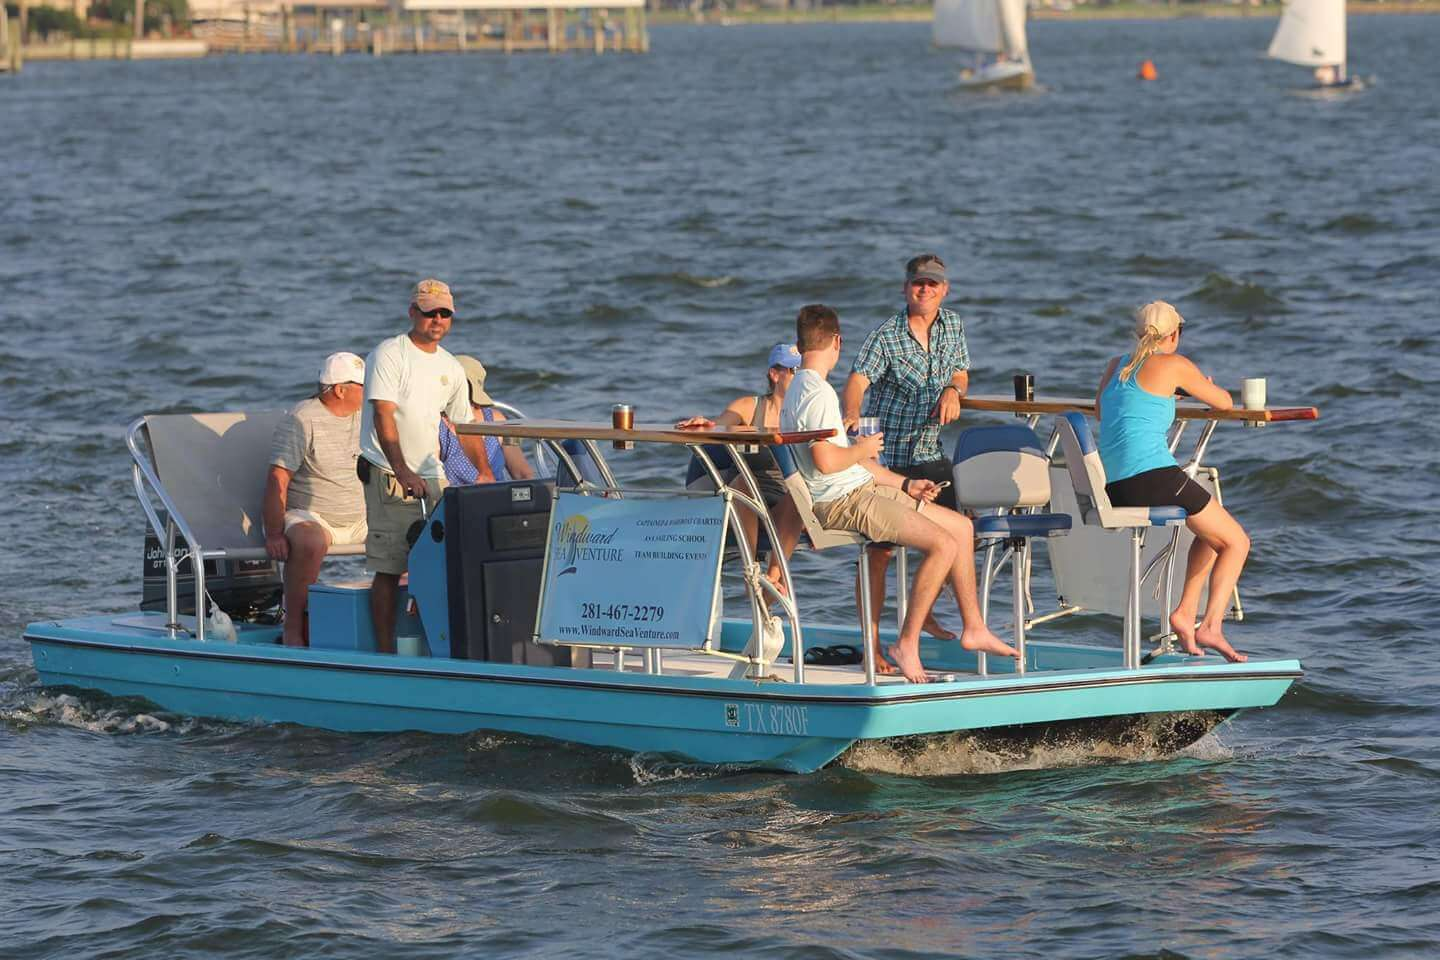 Windward seaventure sailing charter company in kemah tx for The windward